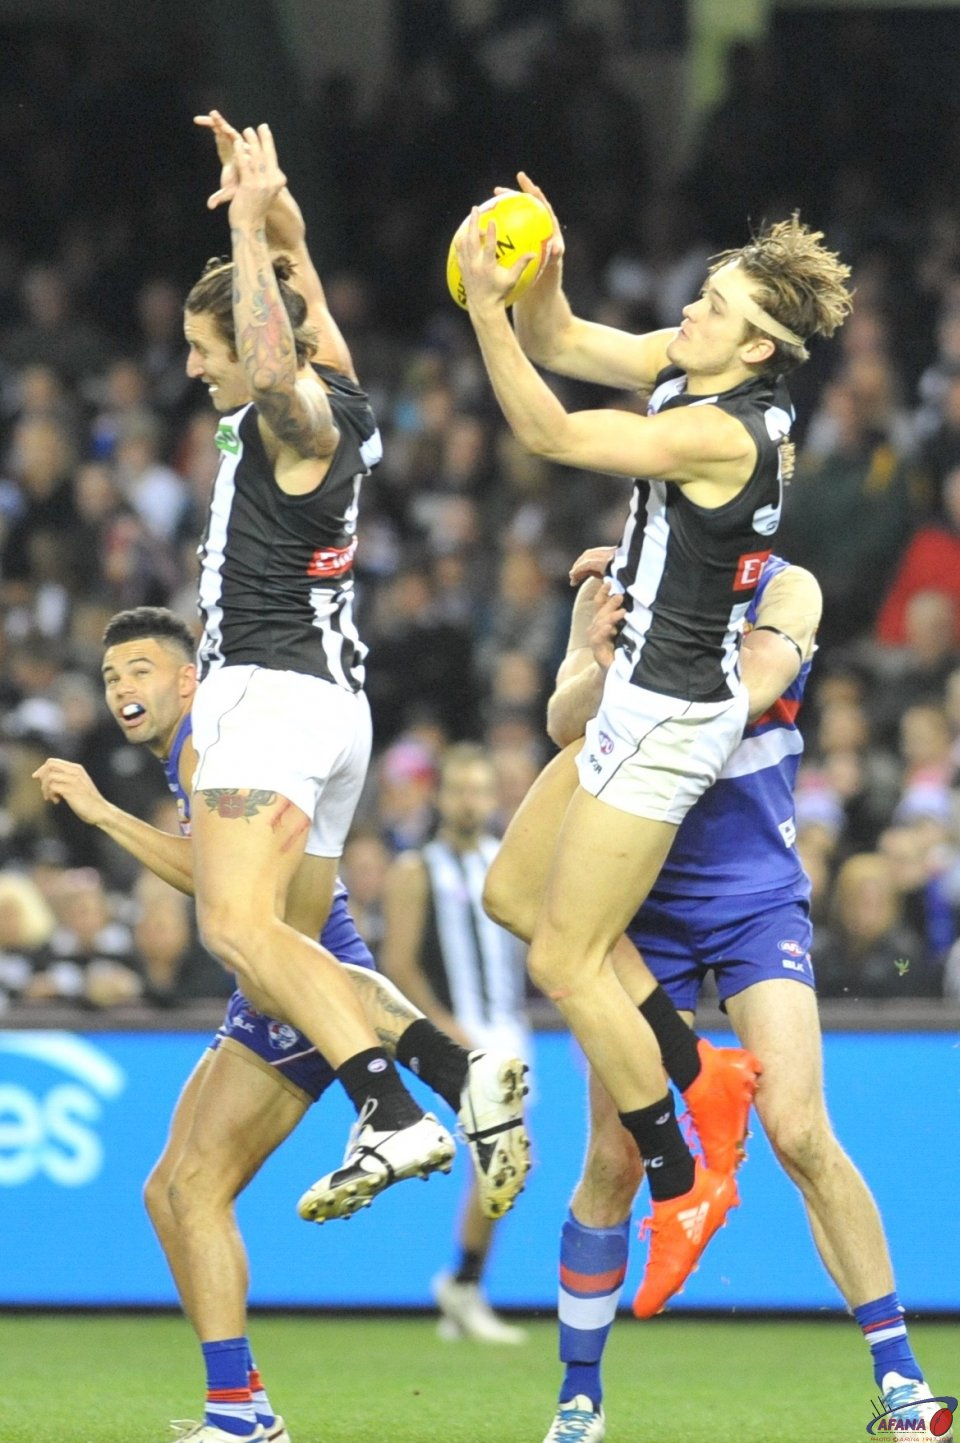 Jesse White misses , Darcy Moore Hold the mark